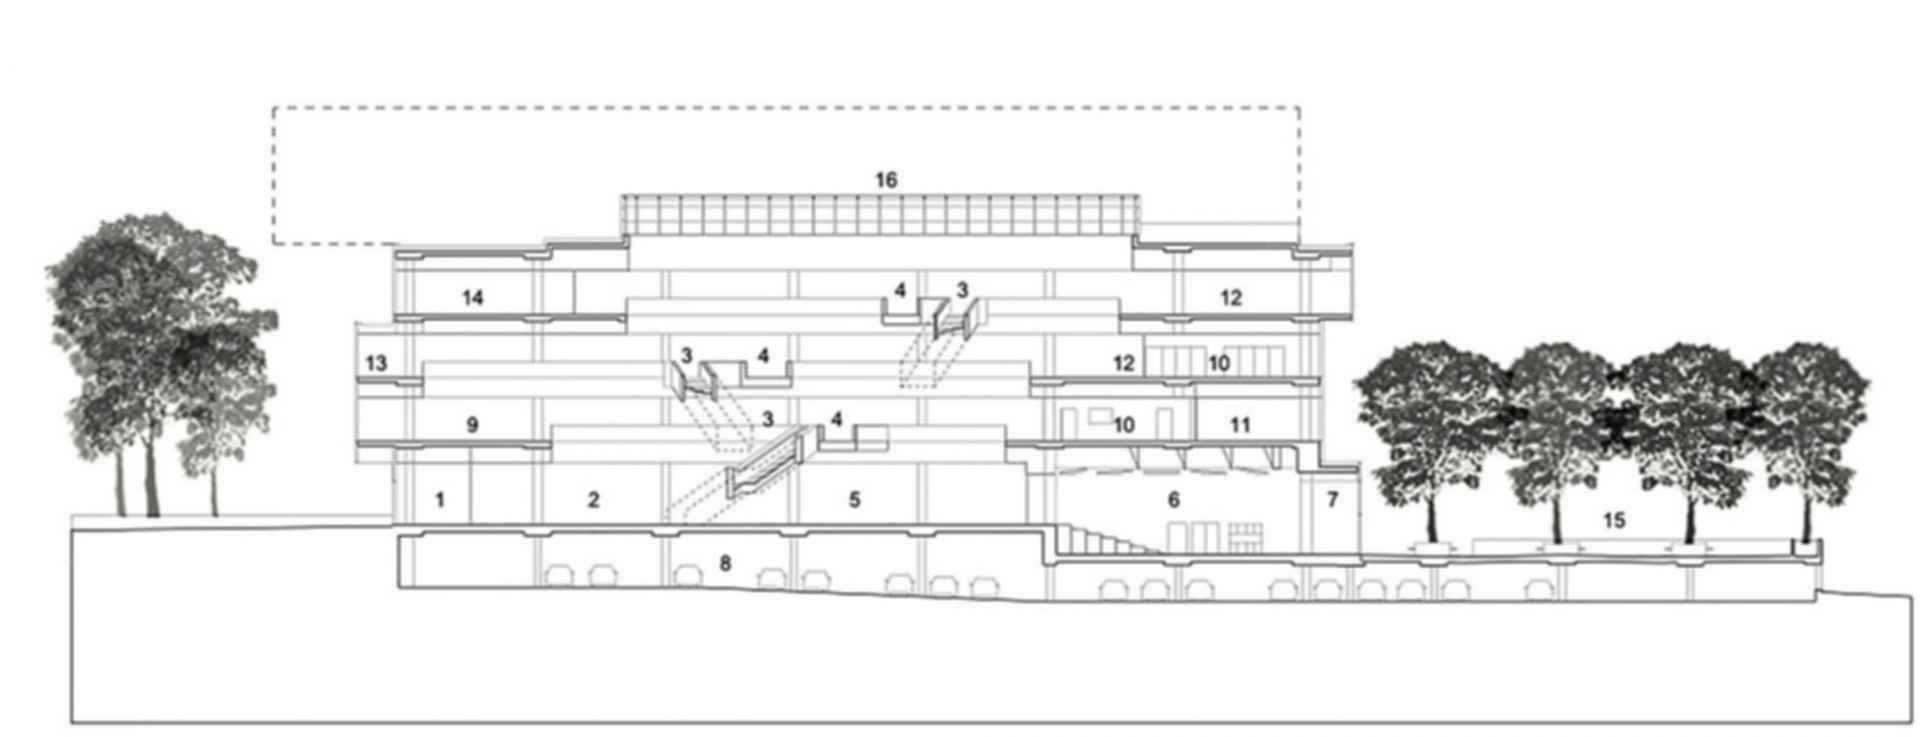 New Halifax Central Library - Concept Design